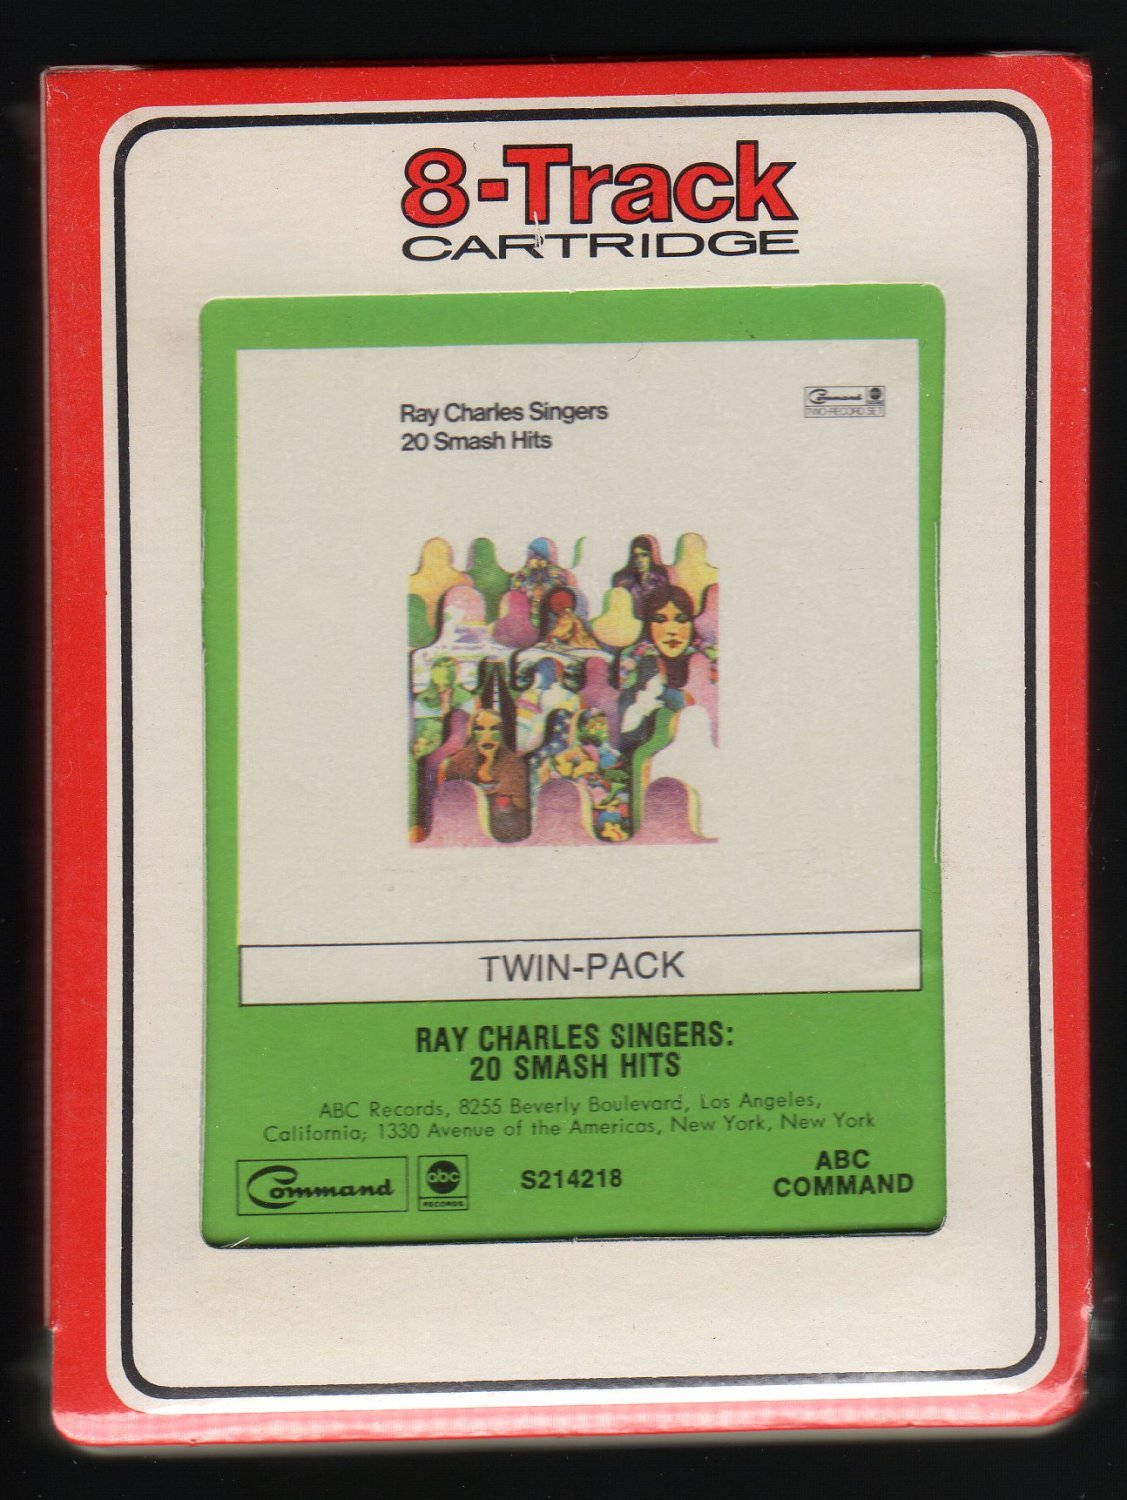 Ray Charles Singers - 20 Smash Hits 1973 RCA ABC Sealed A32 8-TRACK TAPE